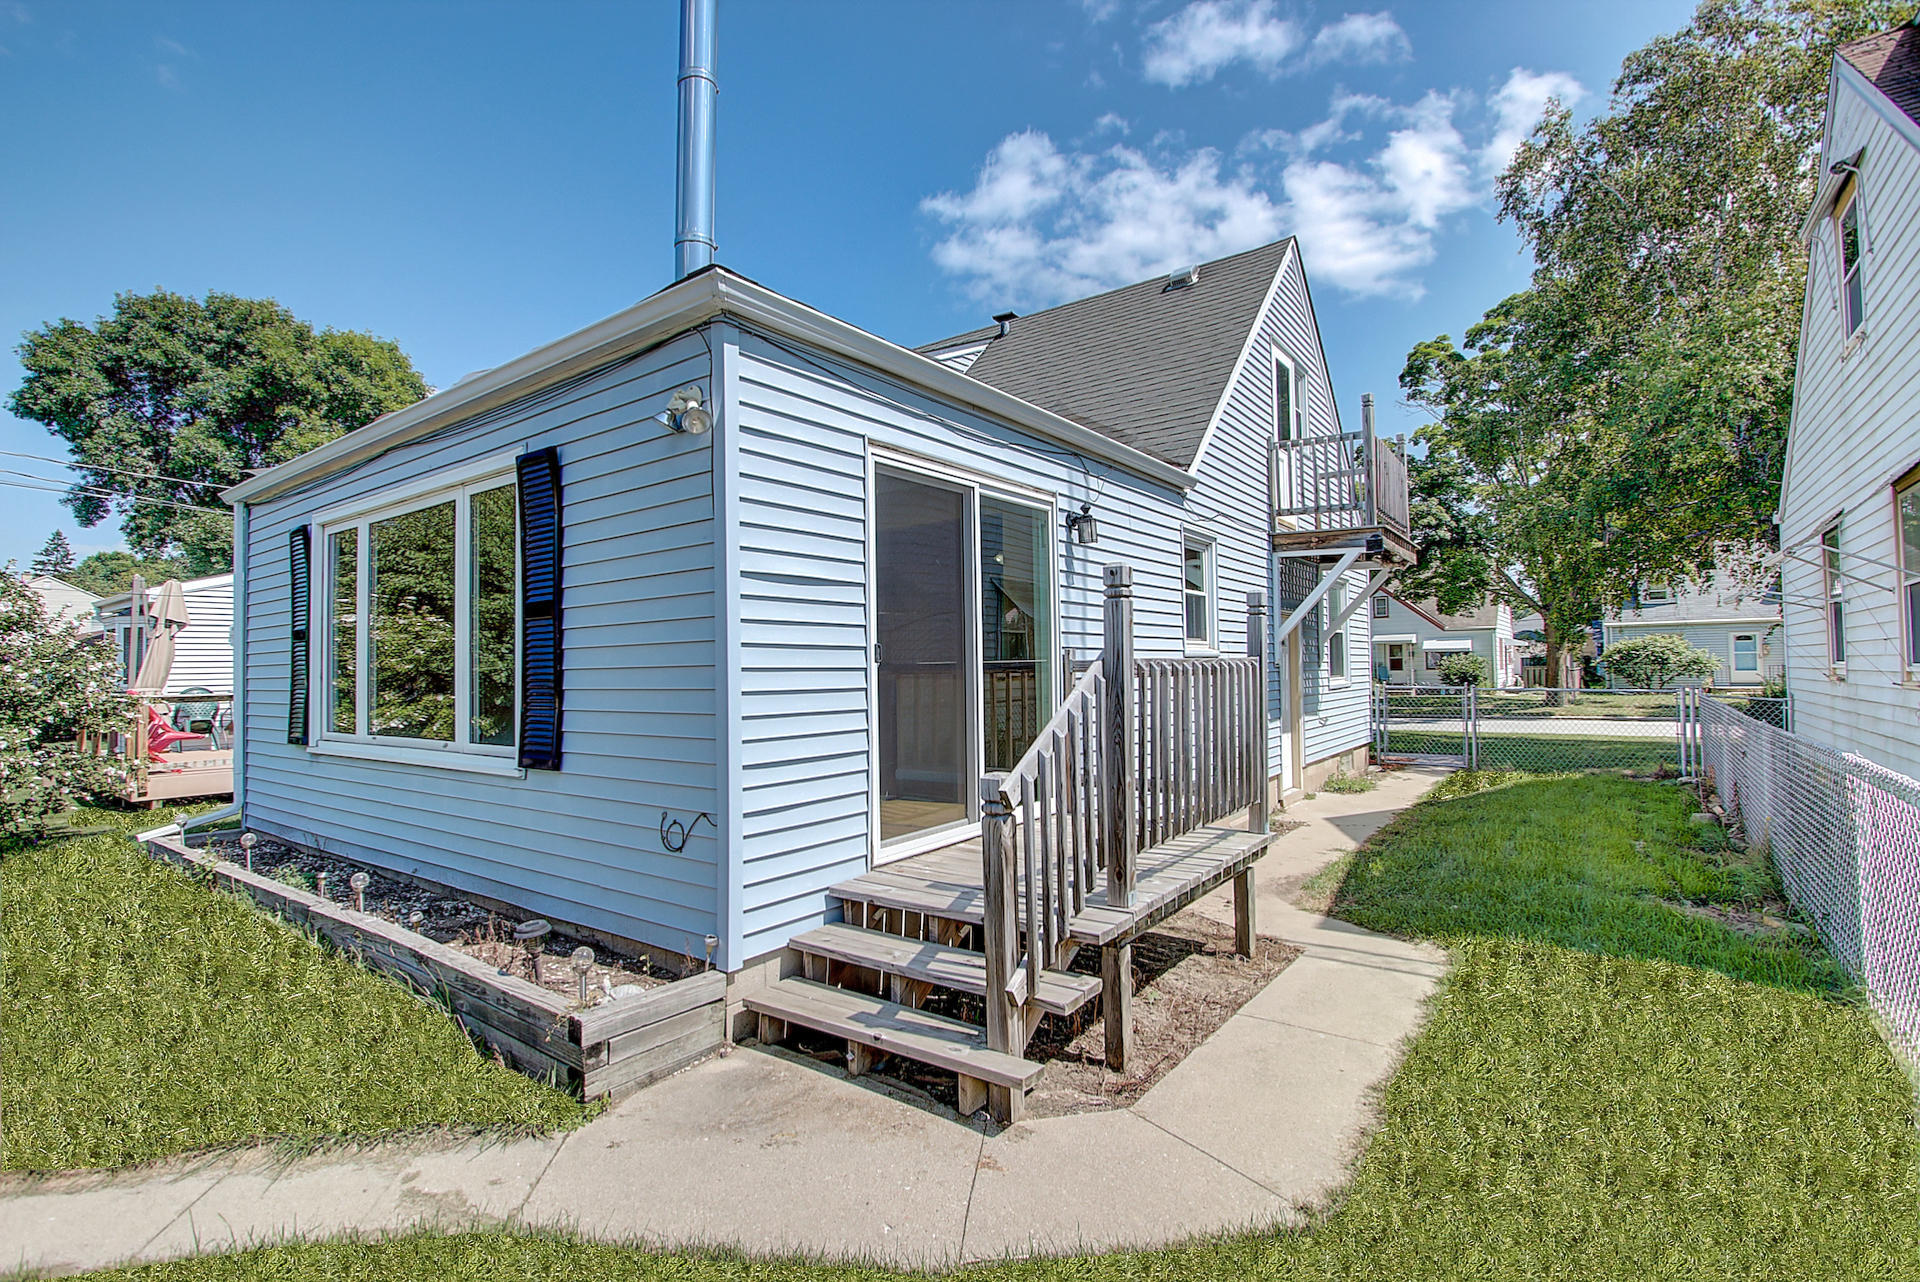 Listing: 3631 N 98th St, Milwaukee, WI.| MLS# 1602025 | Fast Action ...